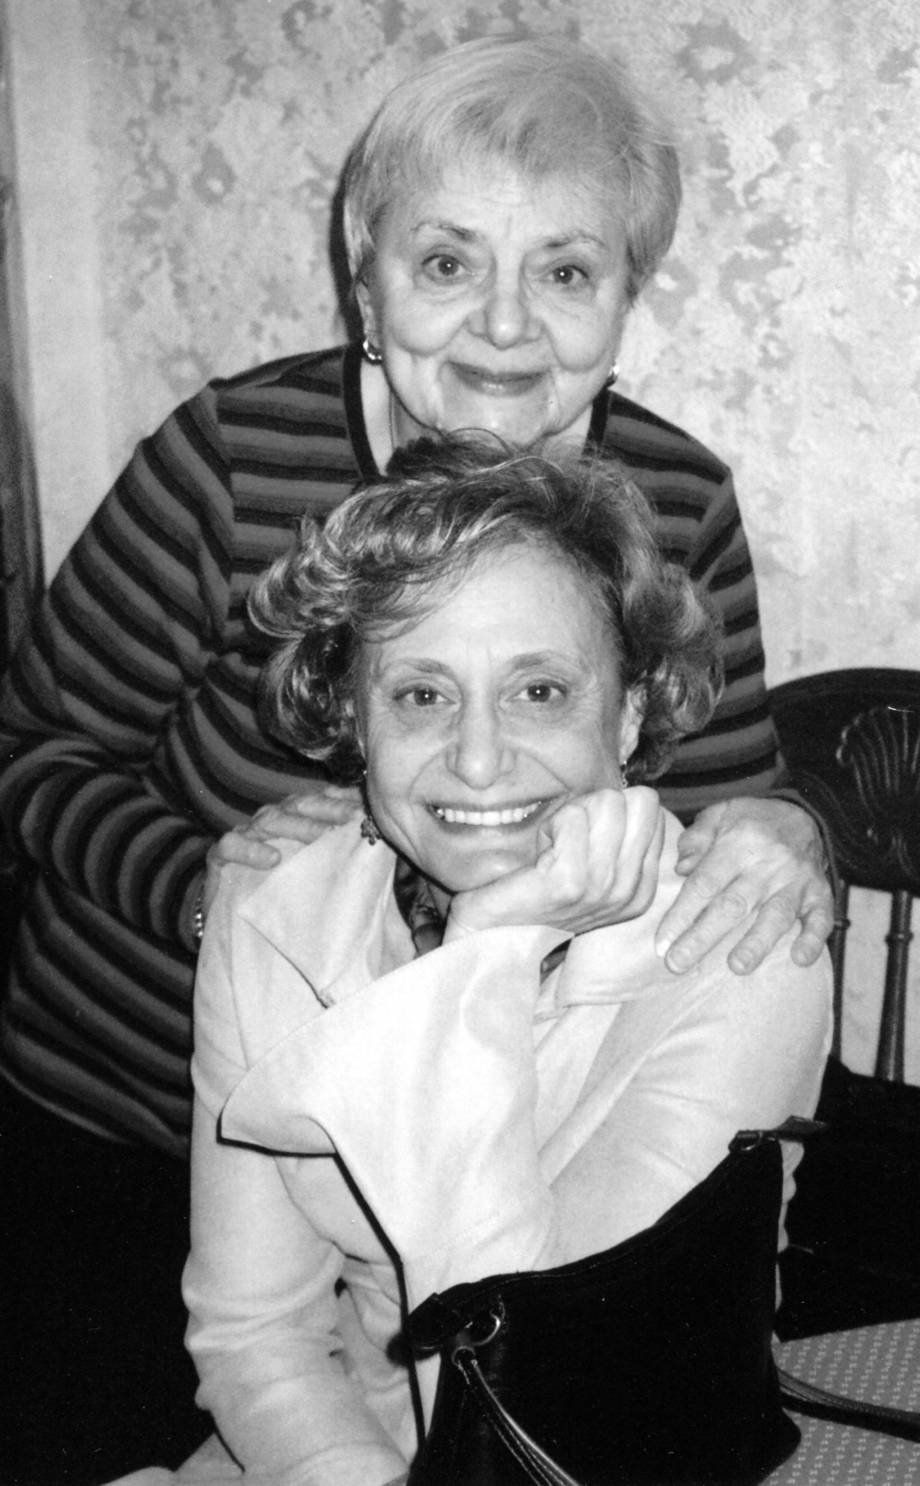 Joe Polacco's mother, Vina, poses with his wife, Nancy, circa 2006. This photo is featured at the end of the book's foreword. Photo courtesy of Joe Polacco.